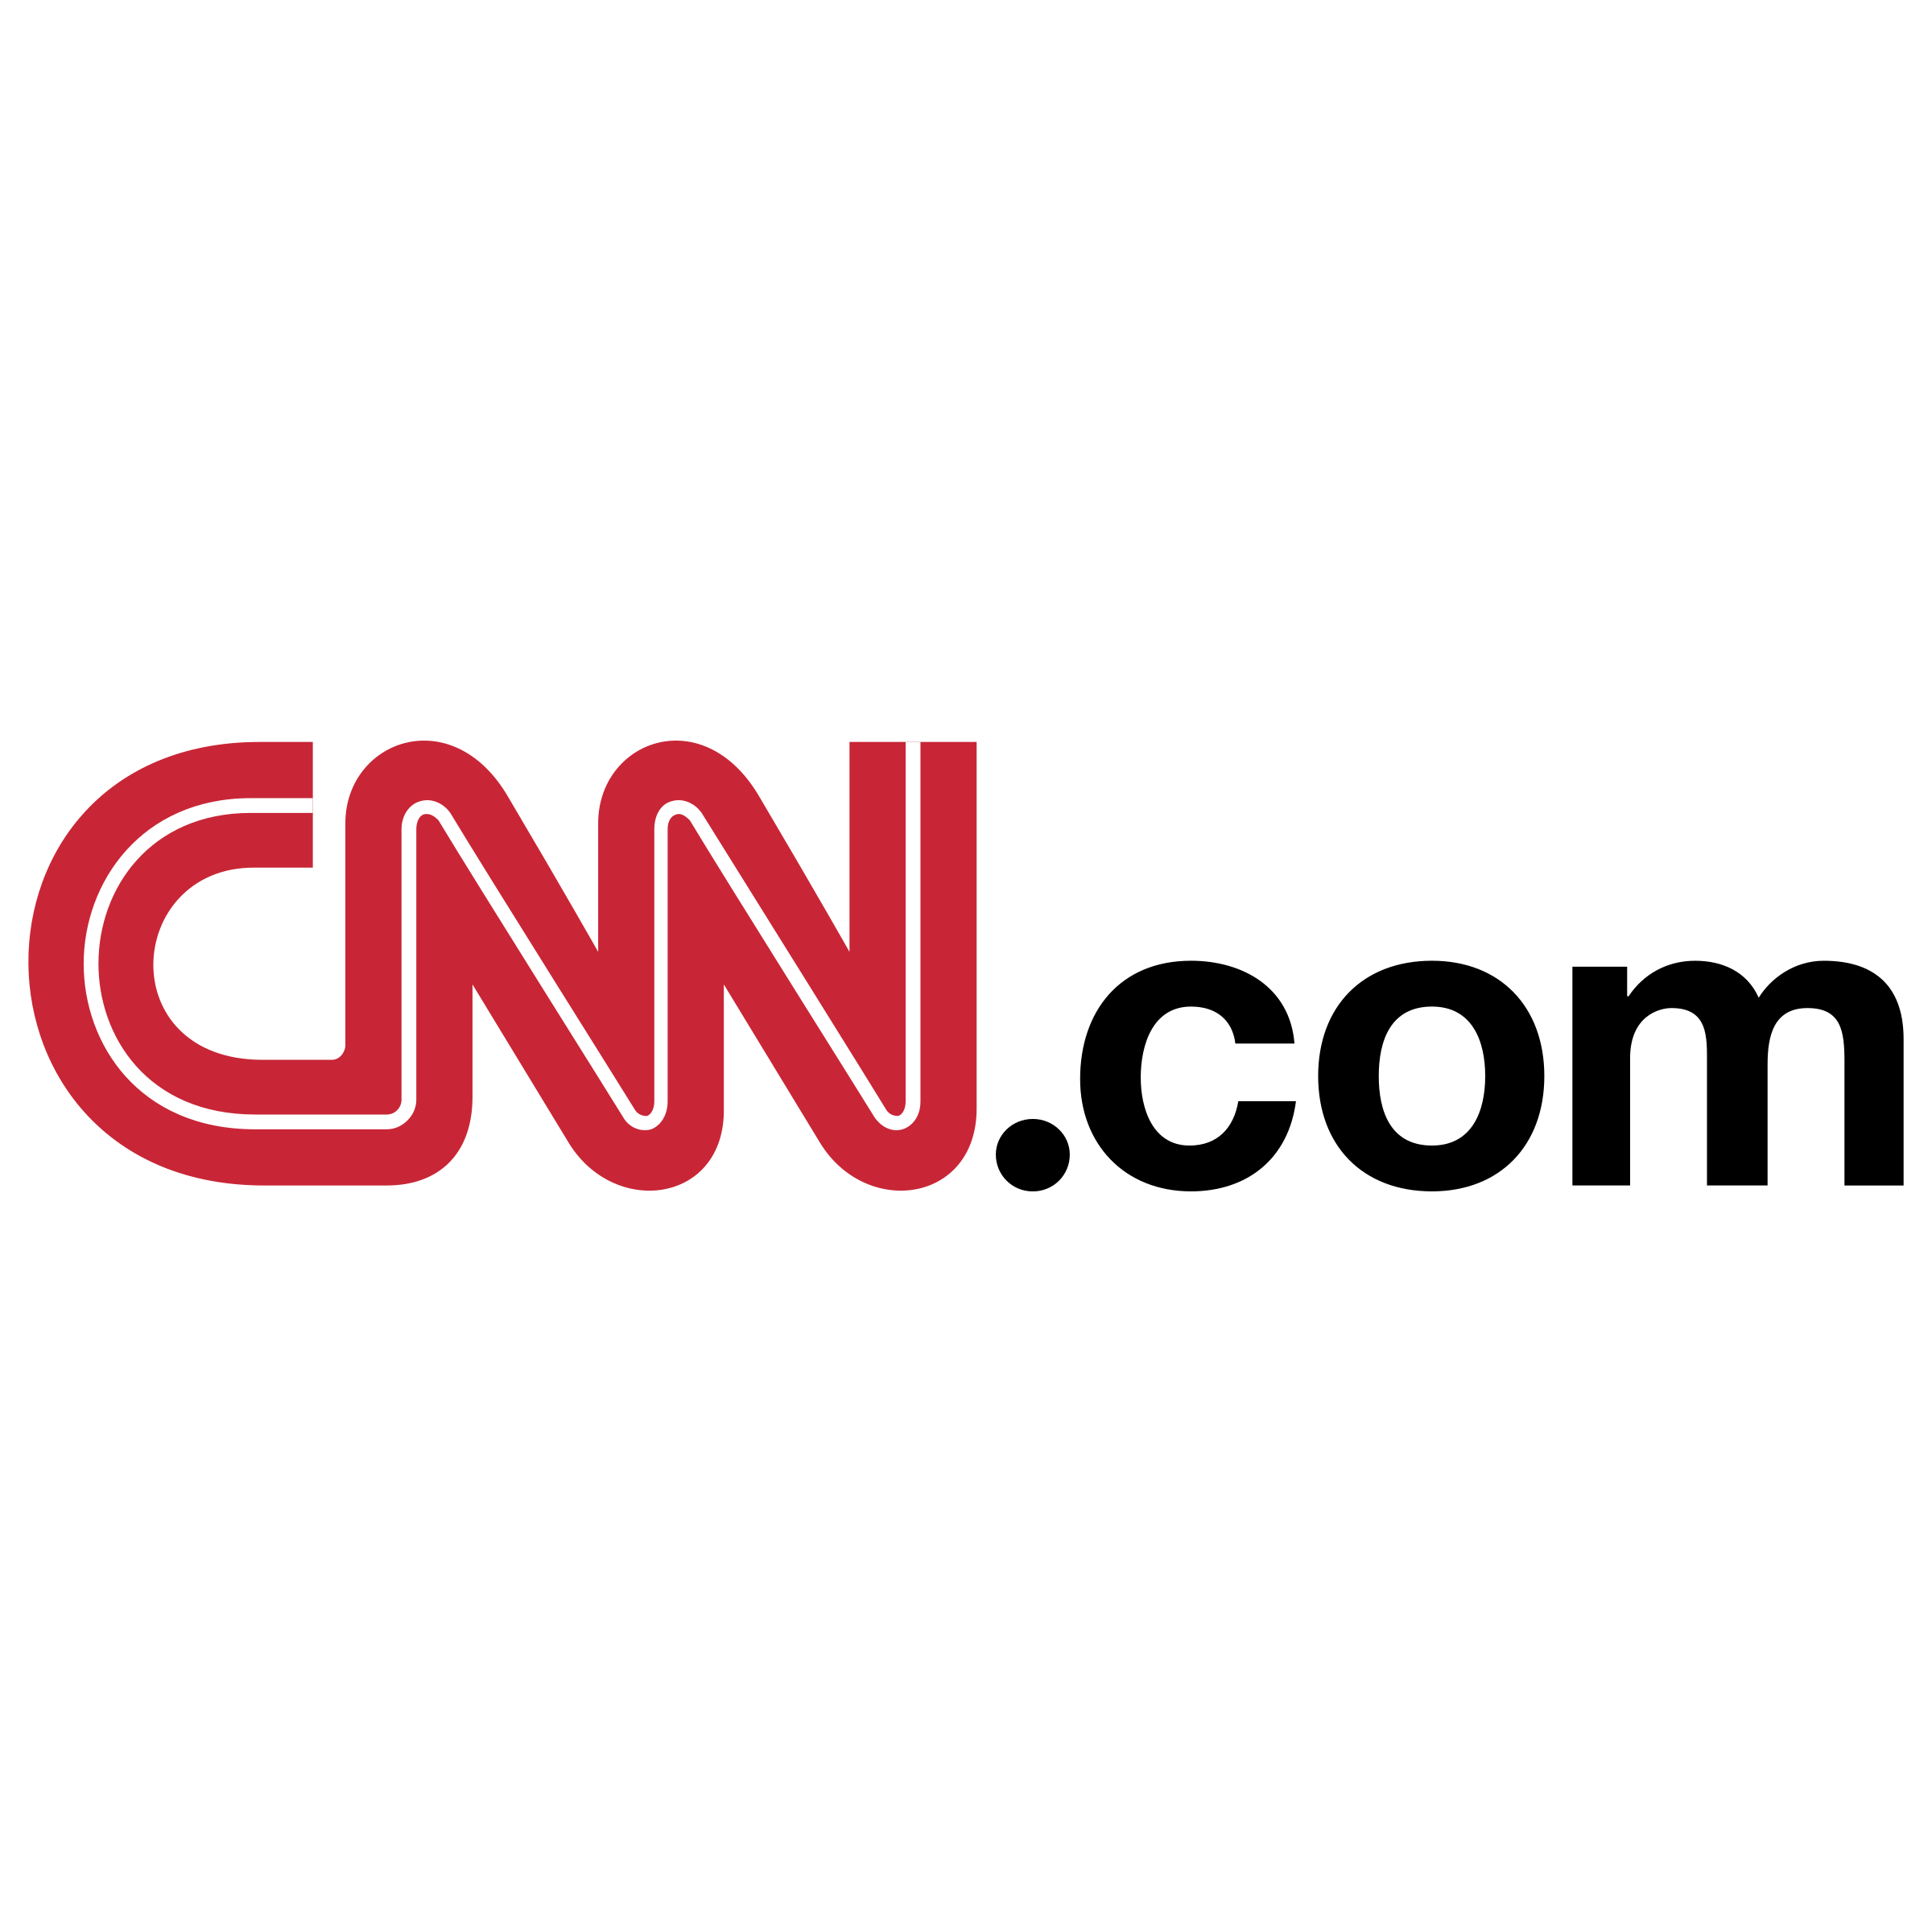 Cnn Com Logo Png Transparent